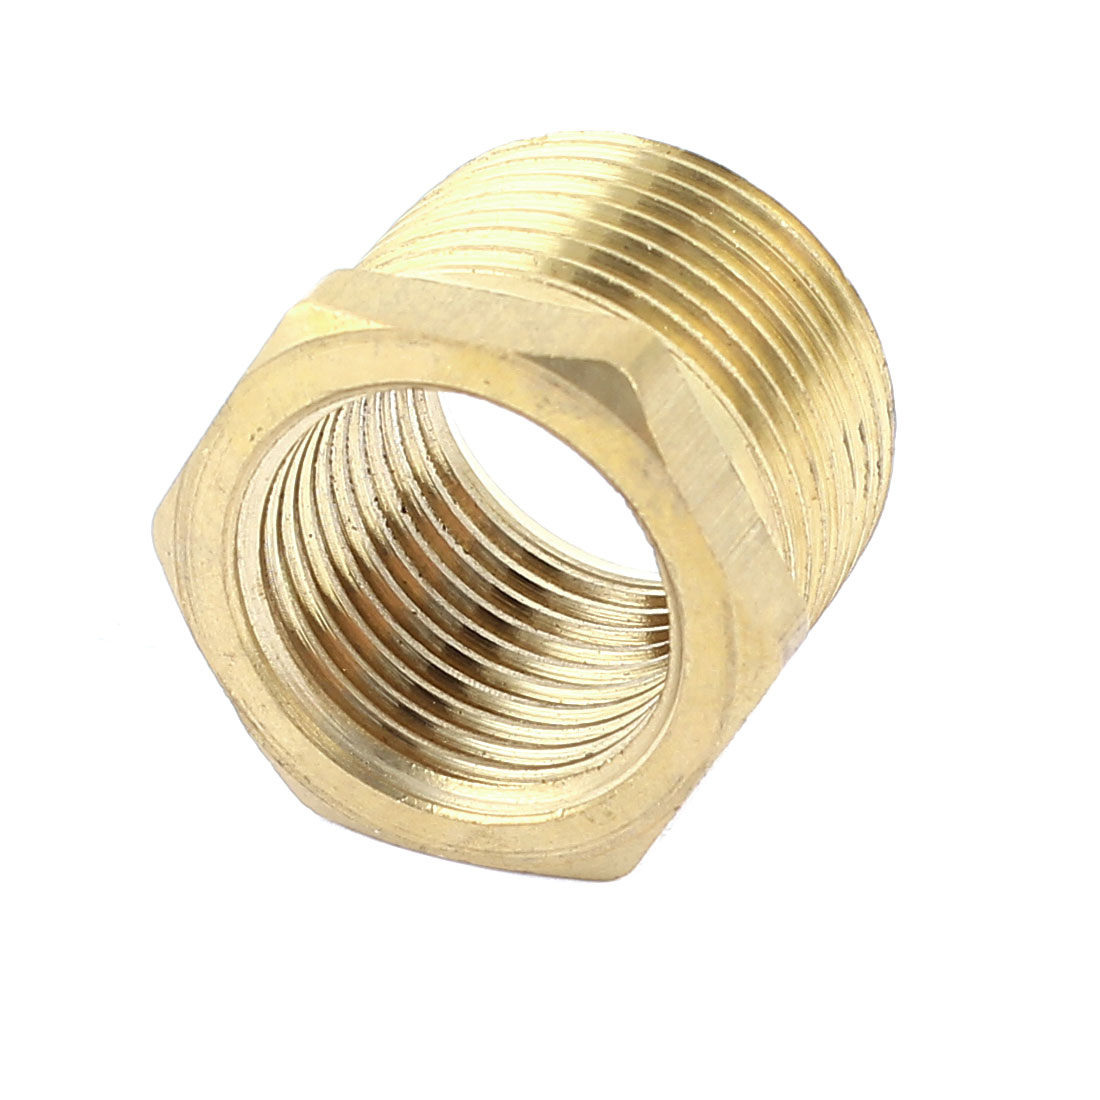 Gold Tone 1/2PT x 3/4PT F/M Thread Brass Hex Reducing Bushing Pipe Adapter